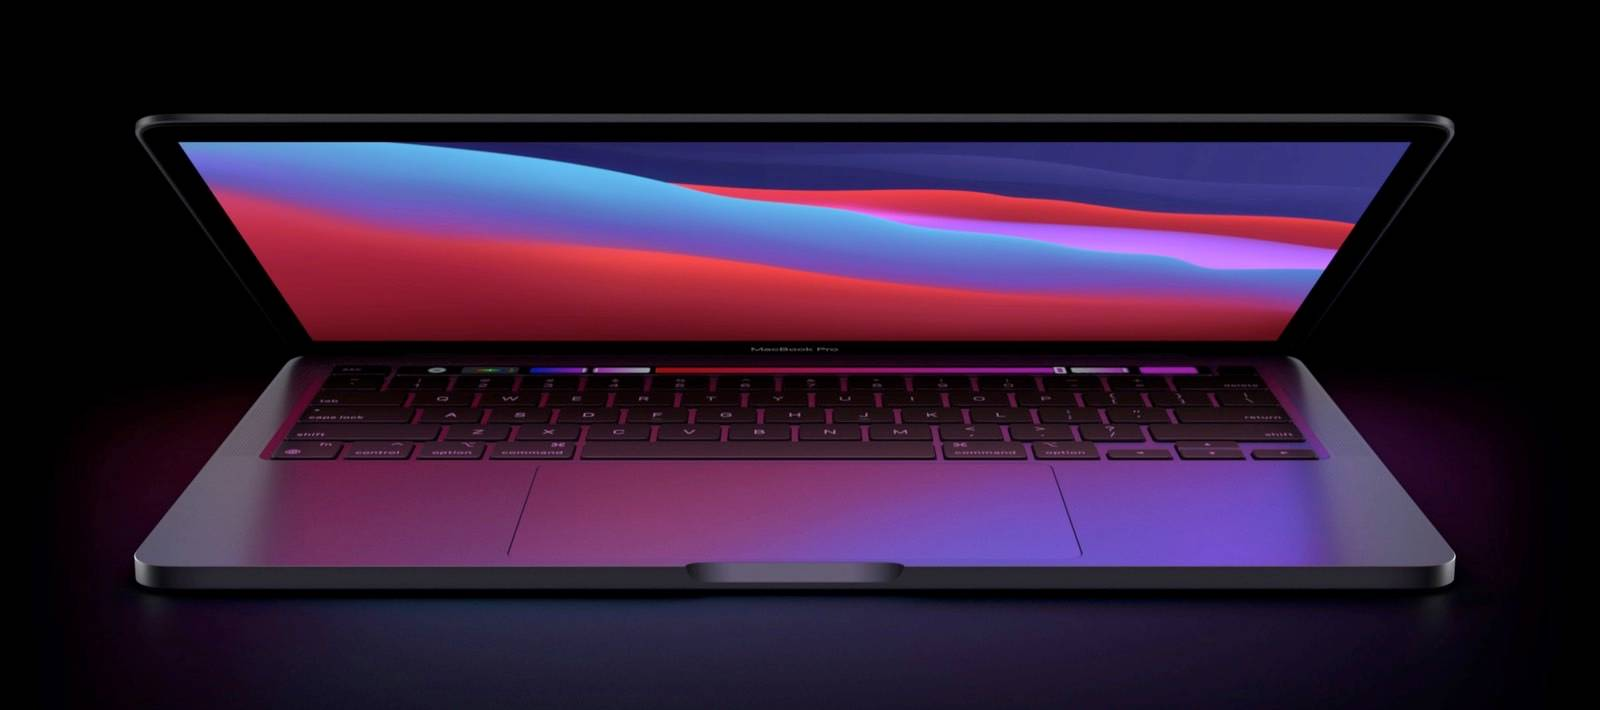 Apple may launch redesigned MacBook Pro featuring Mini-LED this year, says report